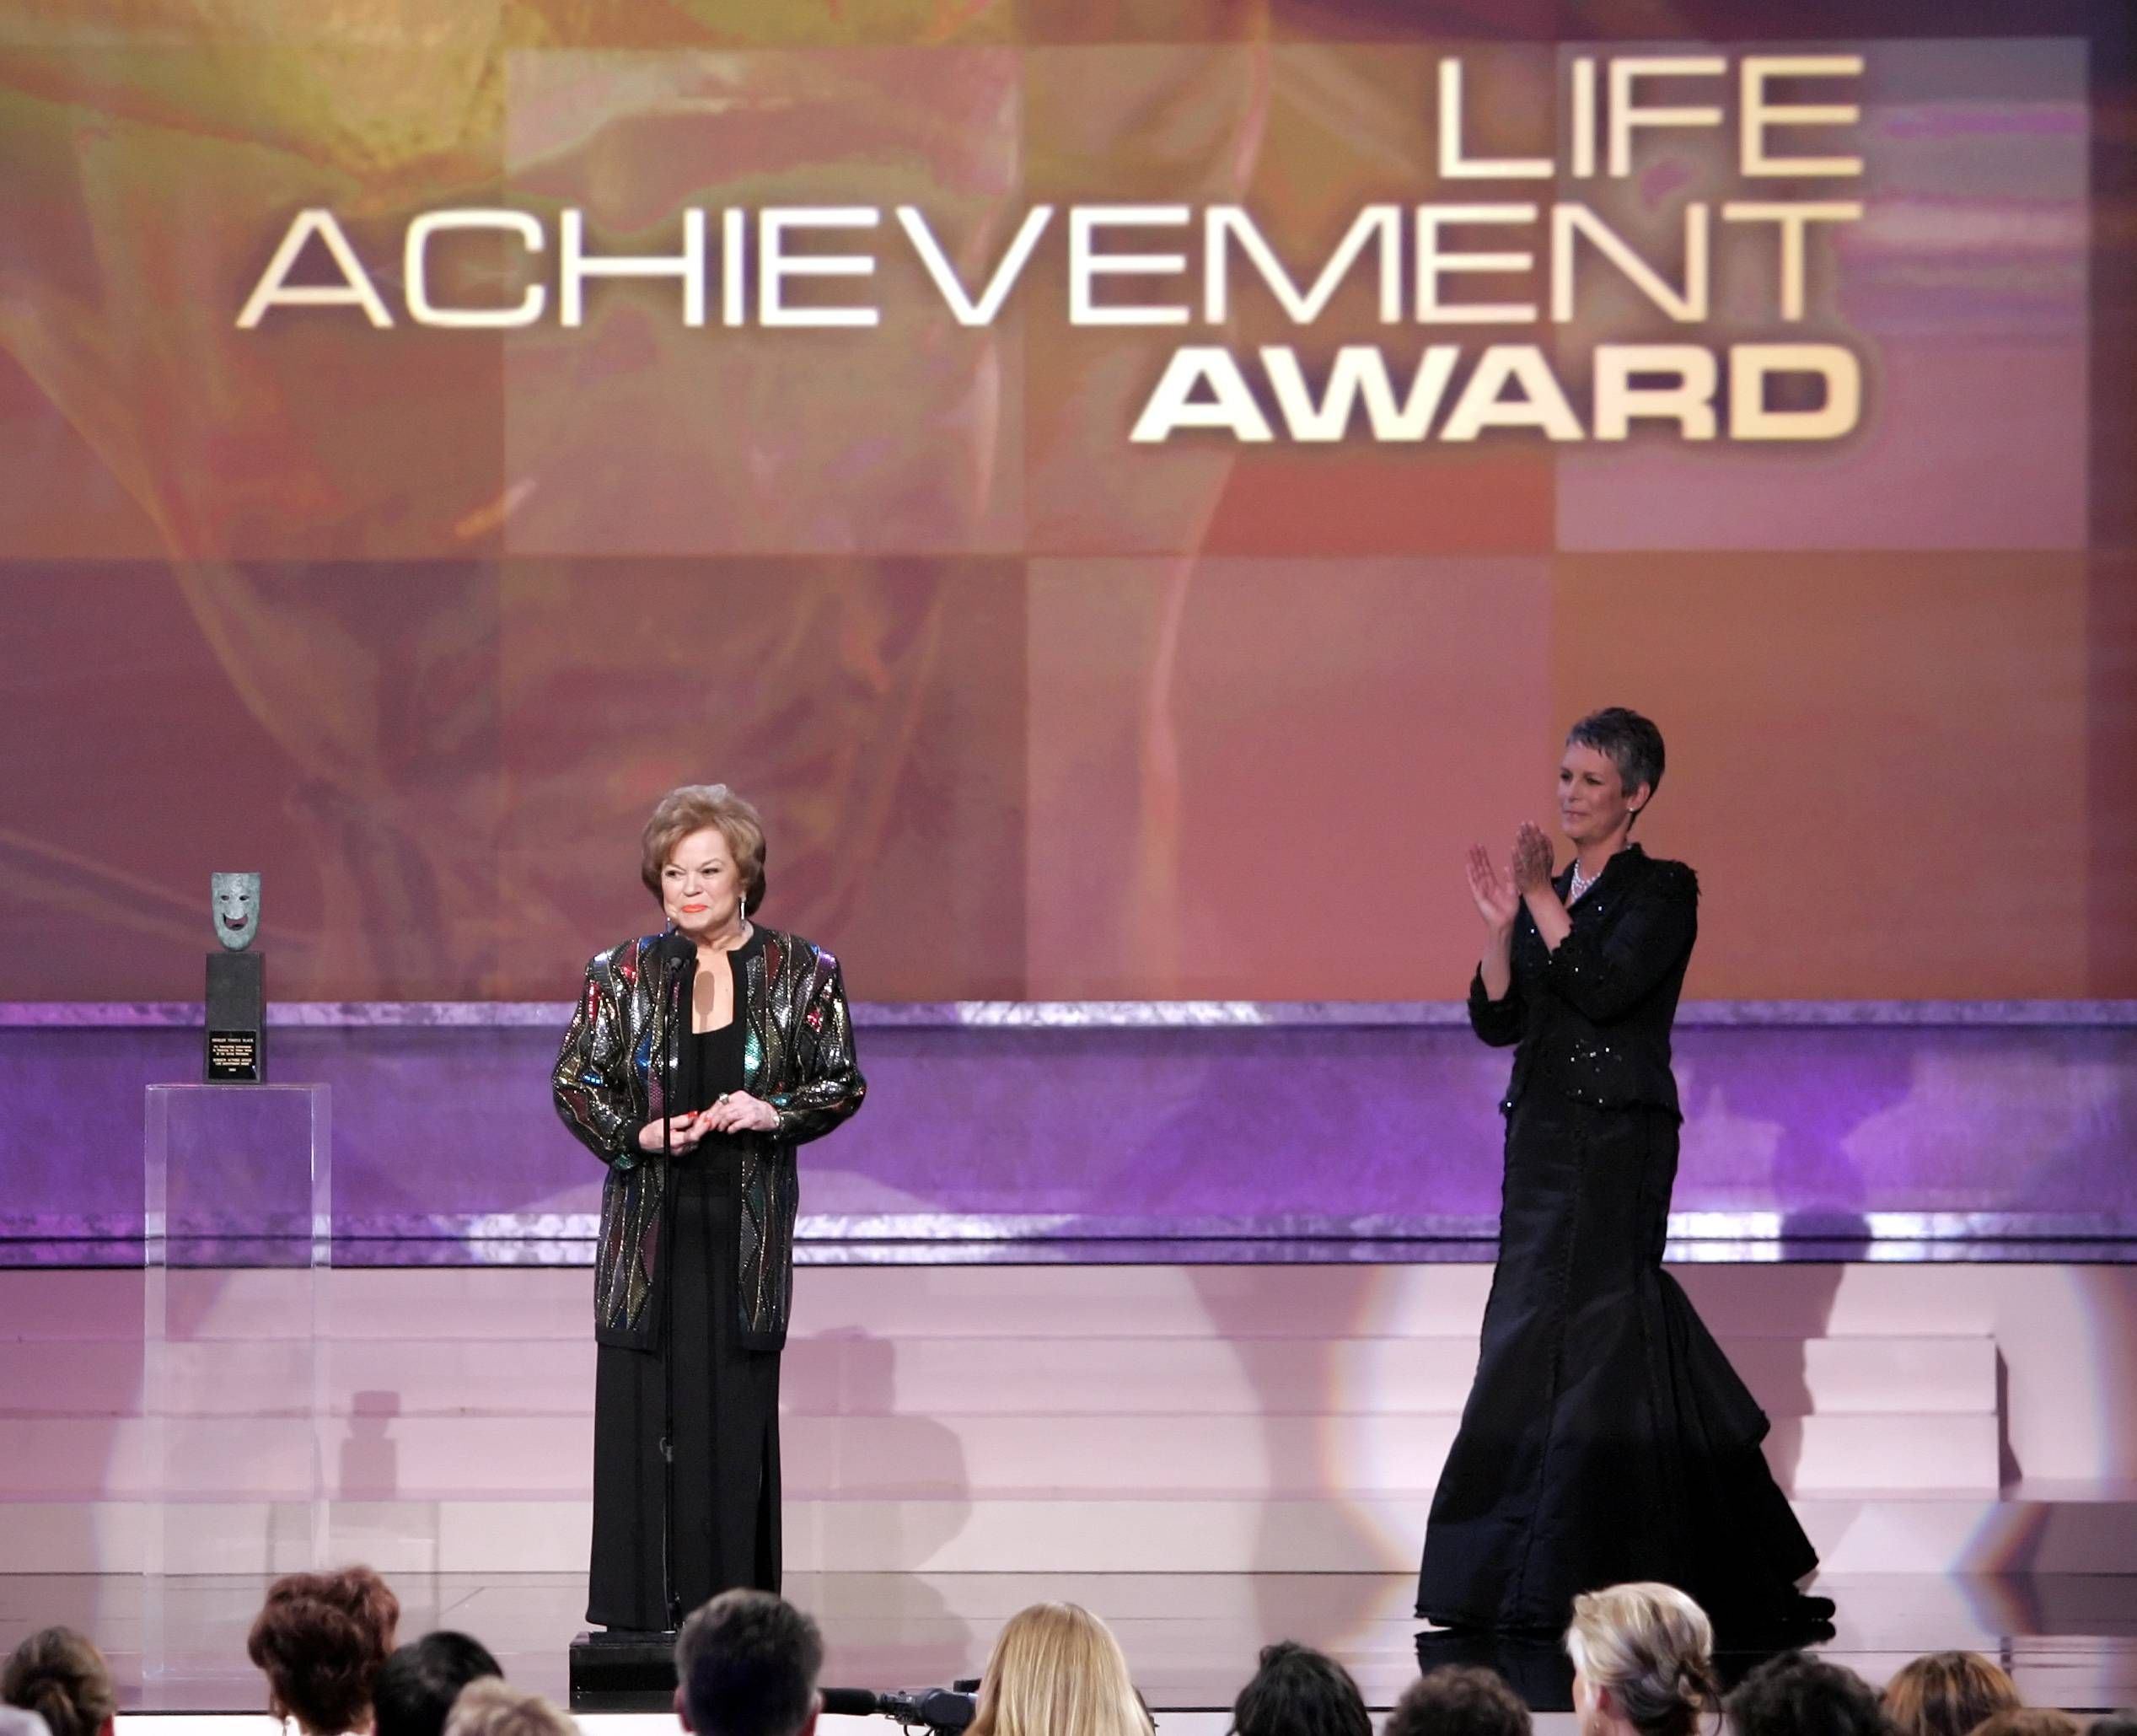 In this Sunday, Jan. 29, 2006, file photo, Jamie Lee Curtis, right, applauds as Shirley Temple Black accepts the Screen Actors Guild Awards annual Life Achievement Award at the Annual Screen Actors Guild Awards, in Los Angeles.